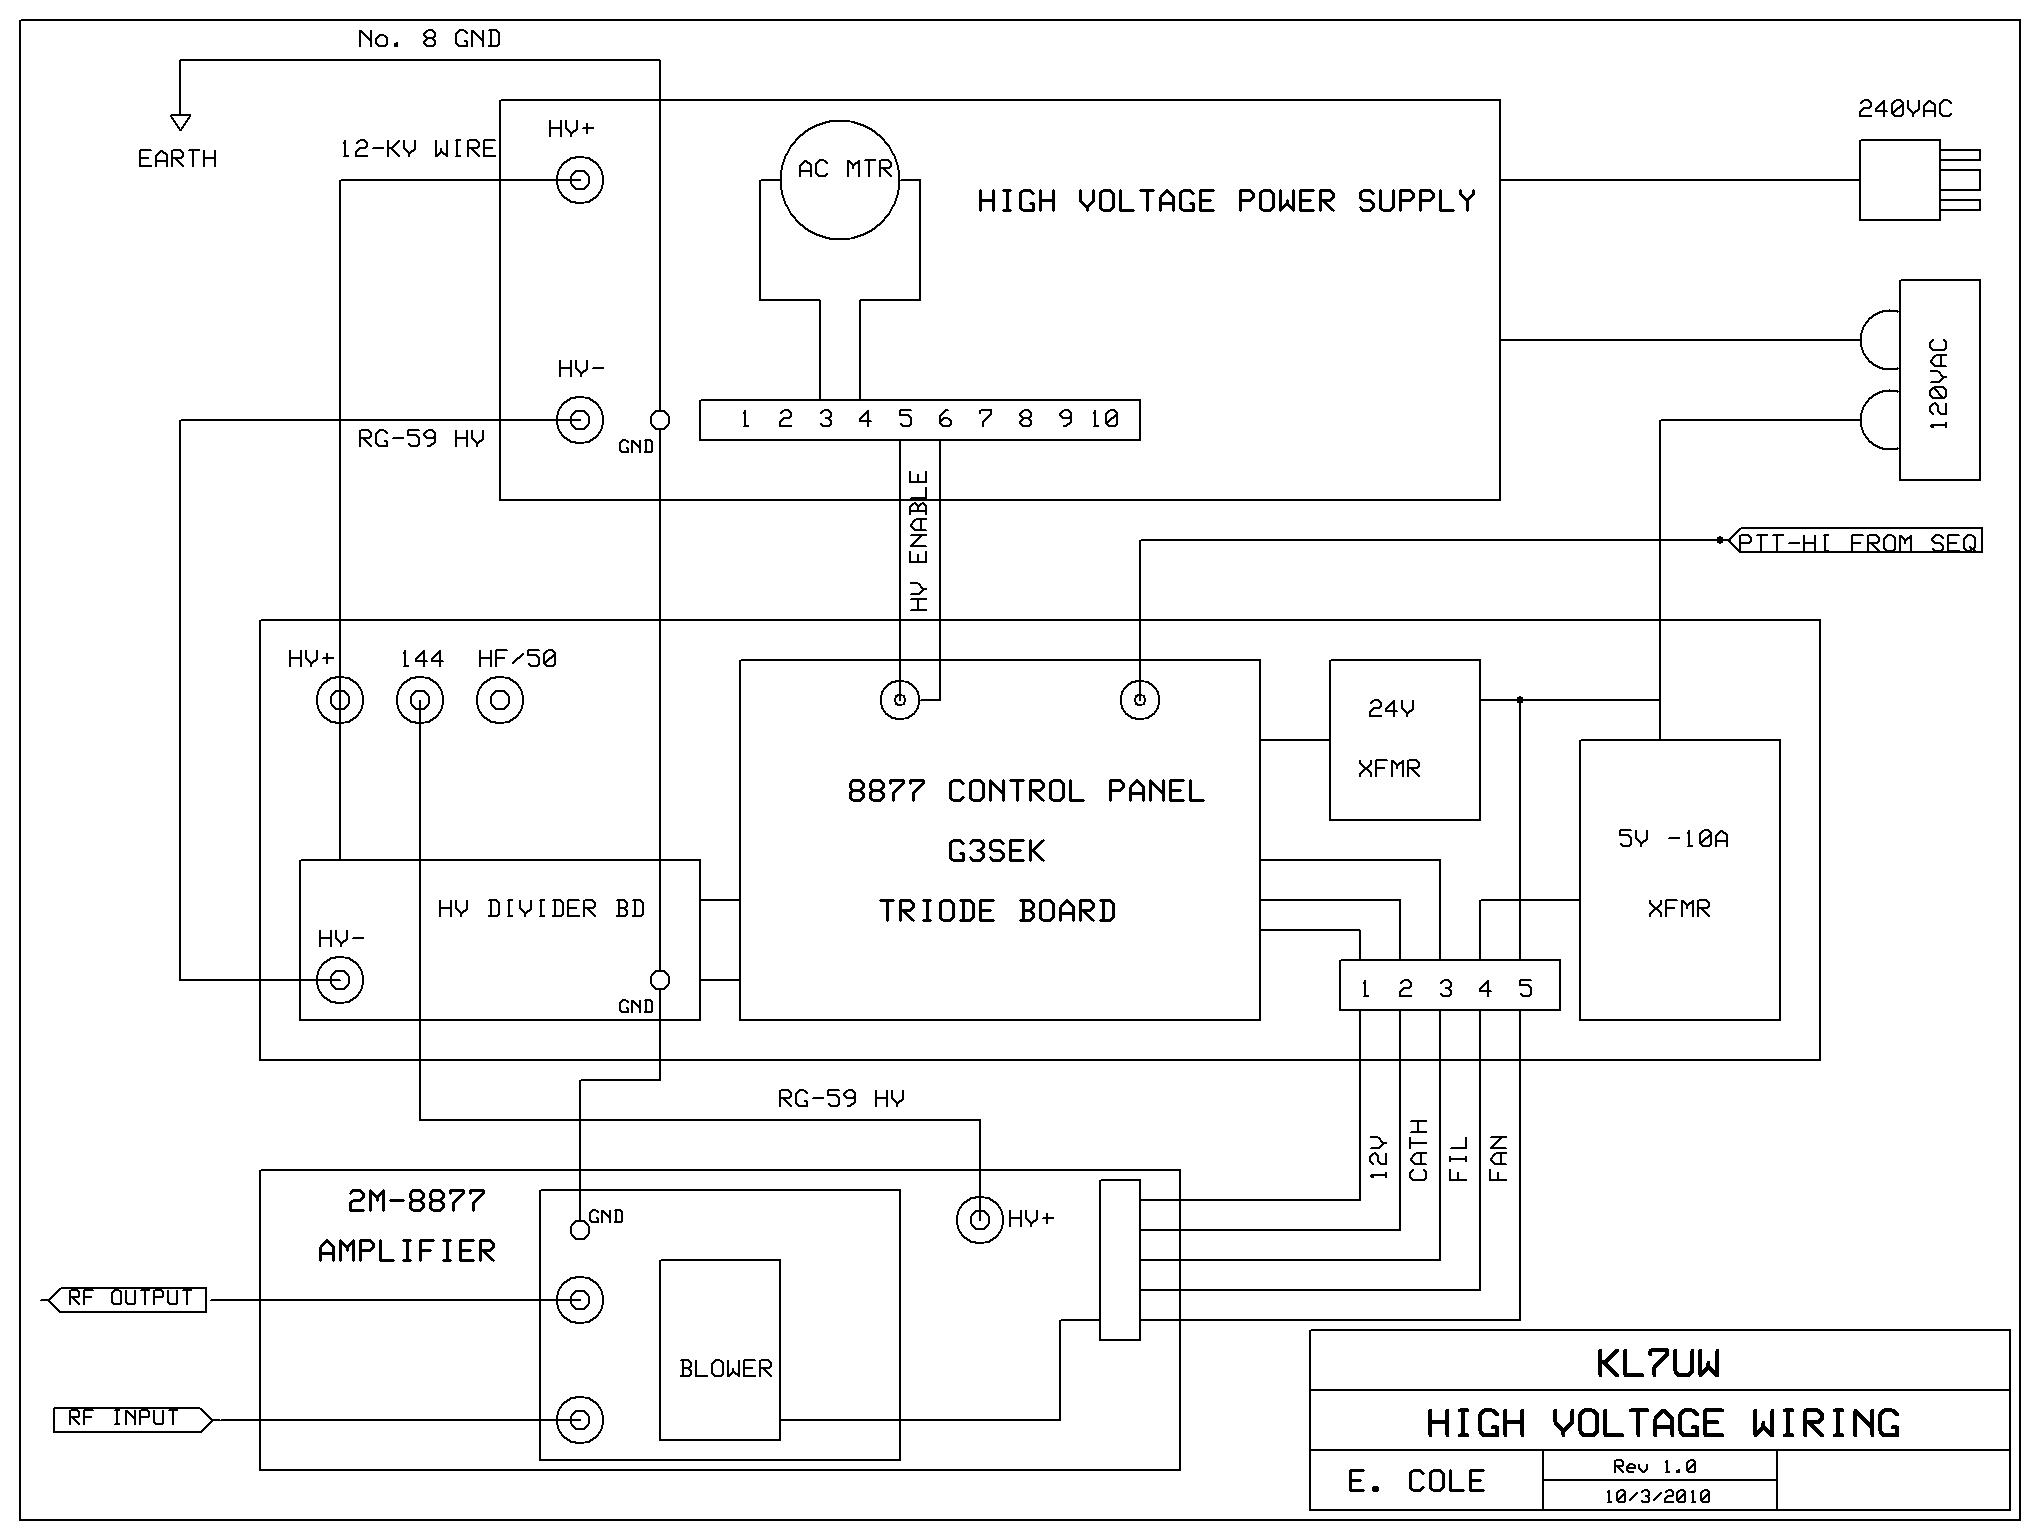 1 Watt  lifier Schematic likewise Kenwood 4 Channel Car   Wiring Diagrams further Palomar Linear Schematic Diagram besides Headphone  lifier Schematic also Tube Tremolo Pedal Schematic. on tube and transistor lifier schematics